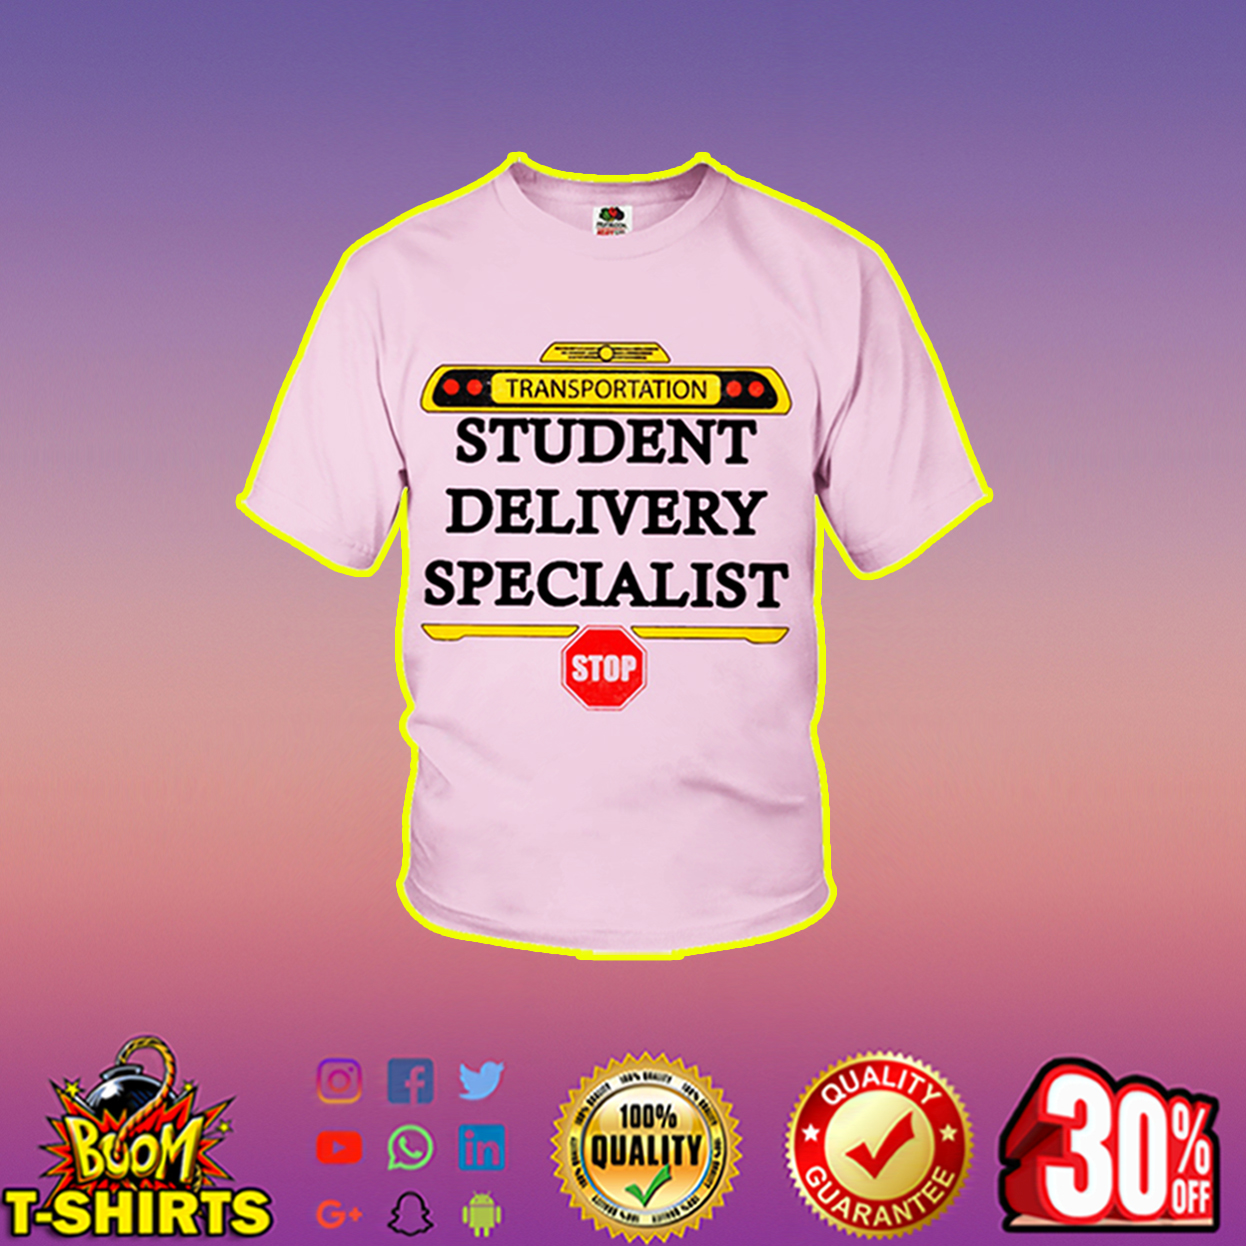 Transportation student delivery specialist youth t-shirt